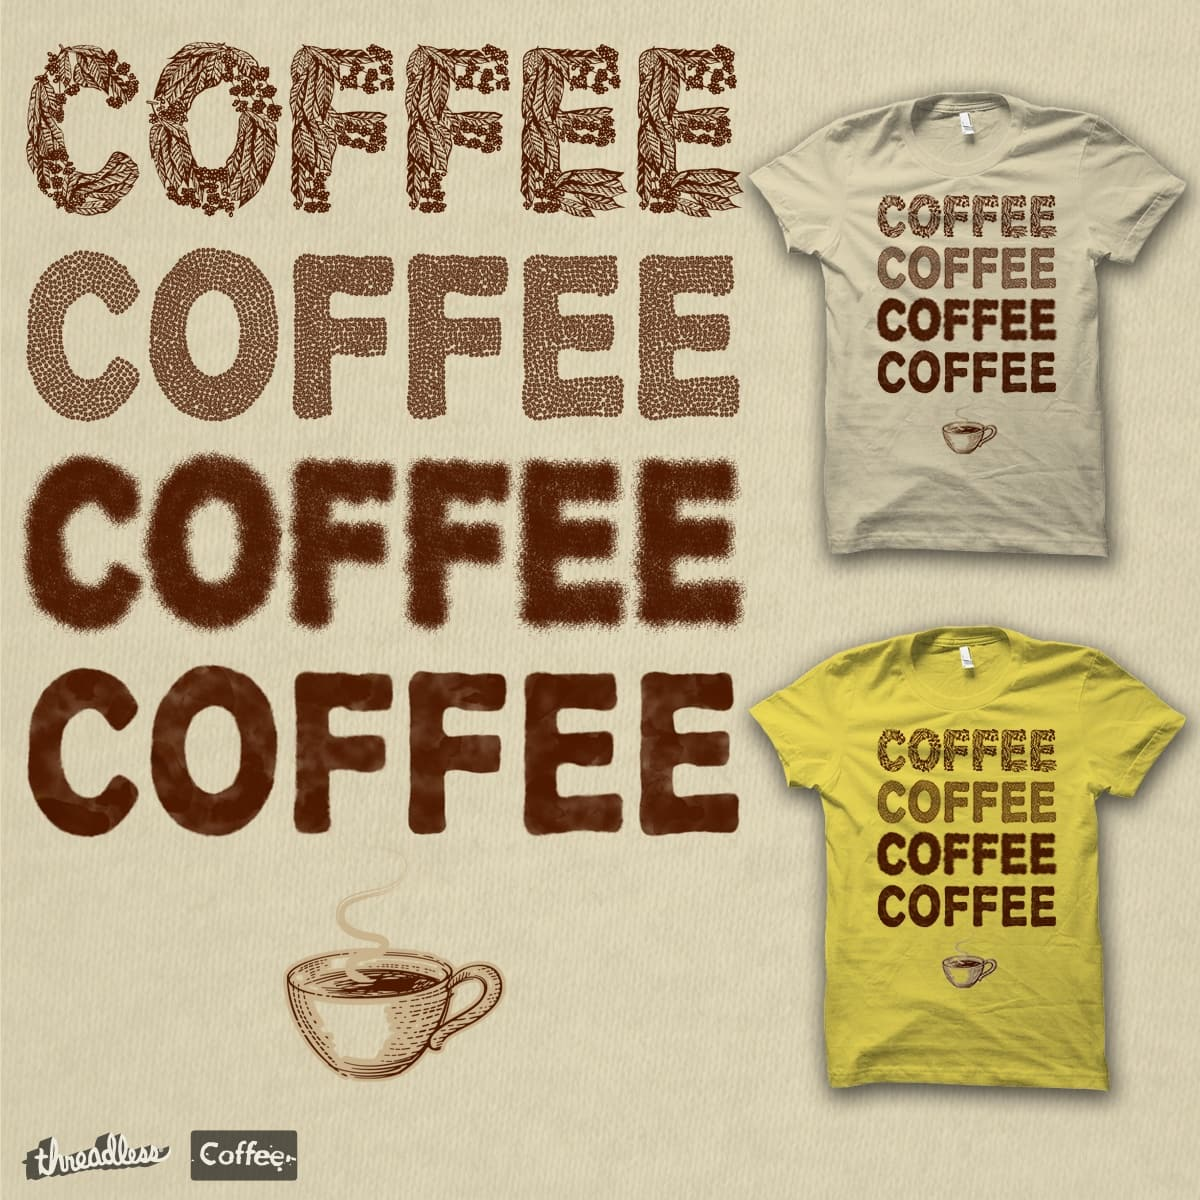 Score FROM SEED TO CUP by jrtoyman on Threadless